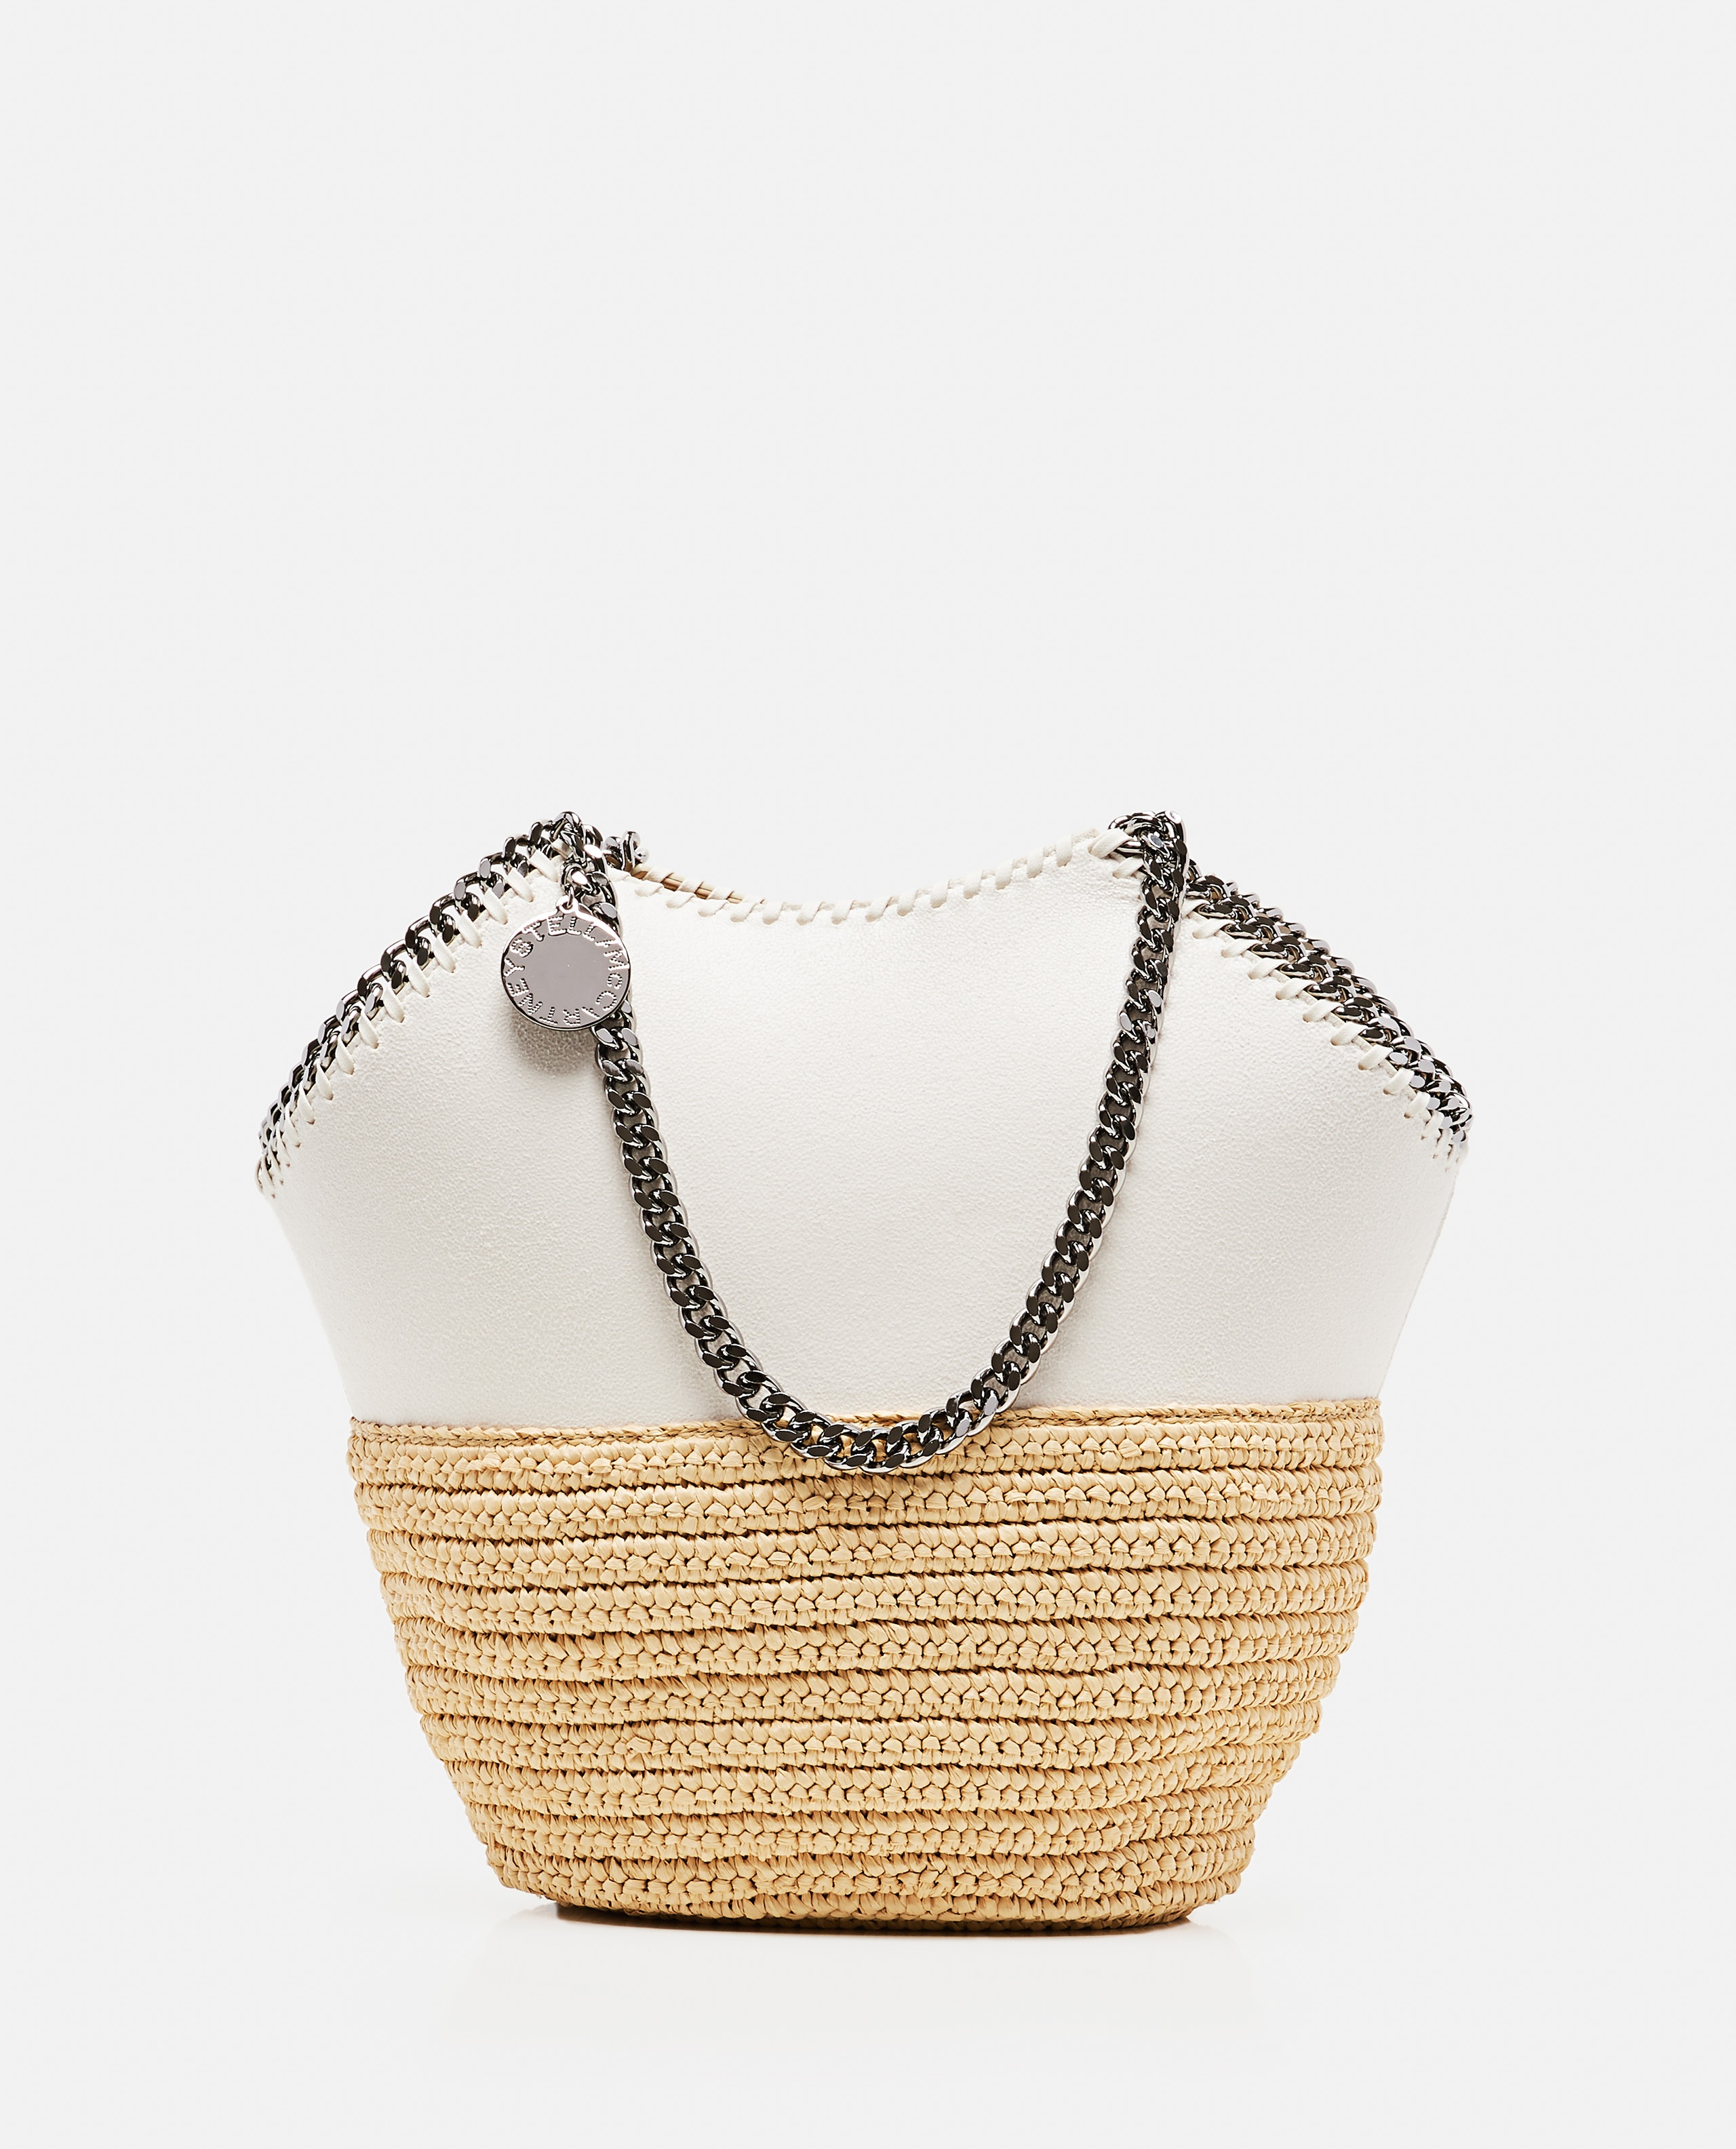 Falabella Tote Media in Rafia Donna Stella McCartney 000308090045179 1